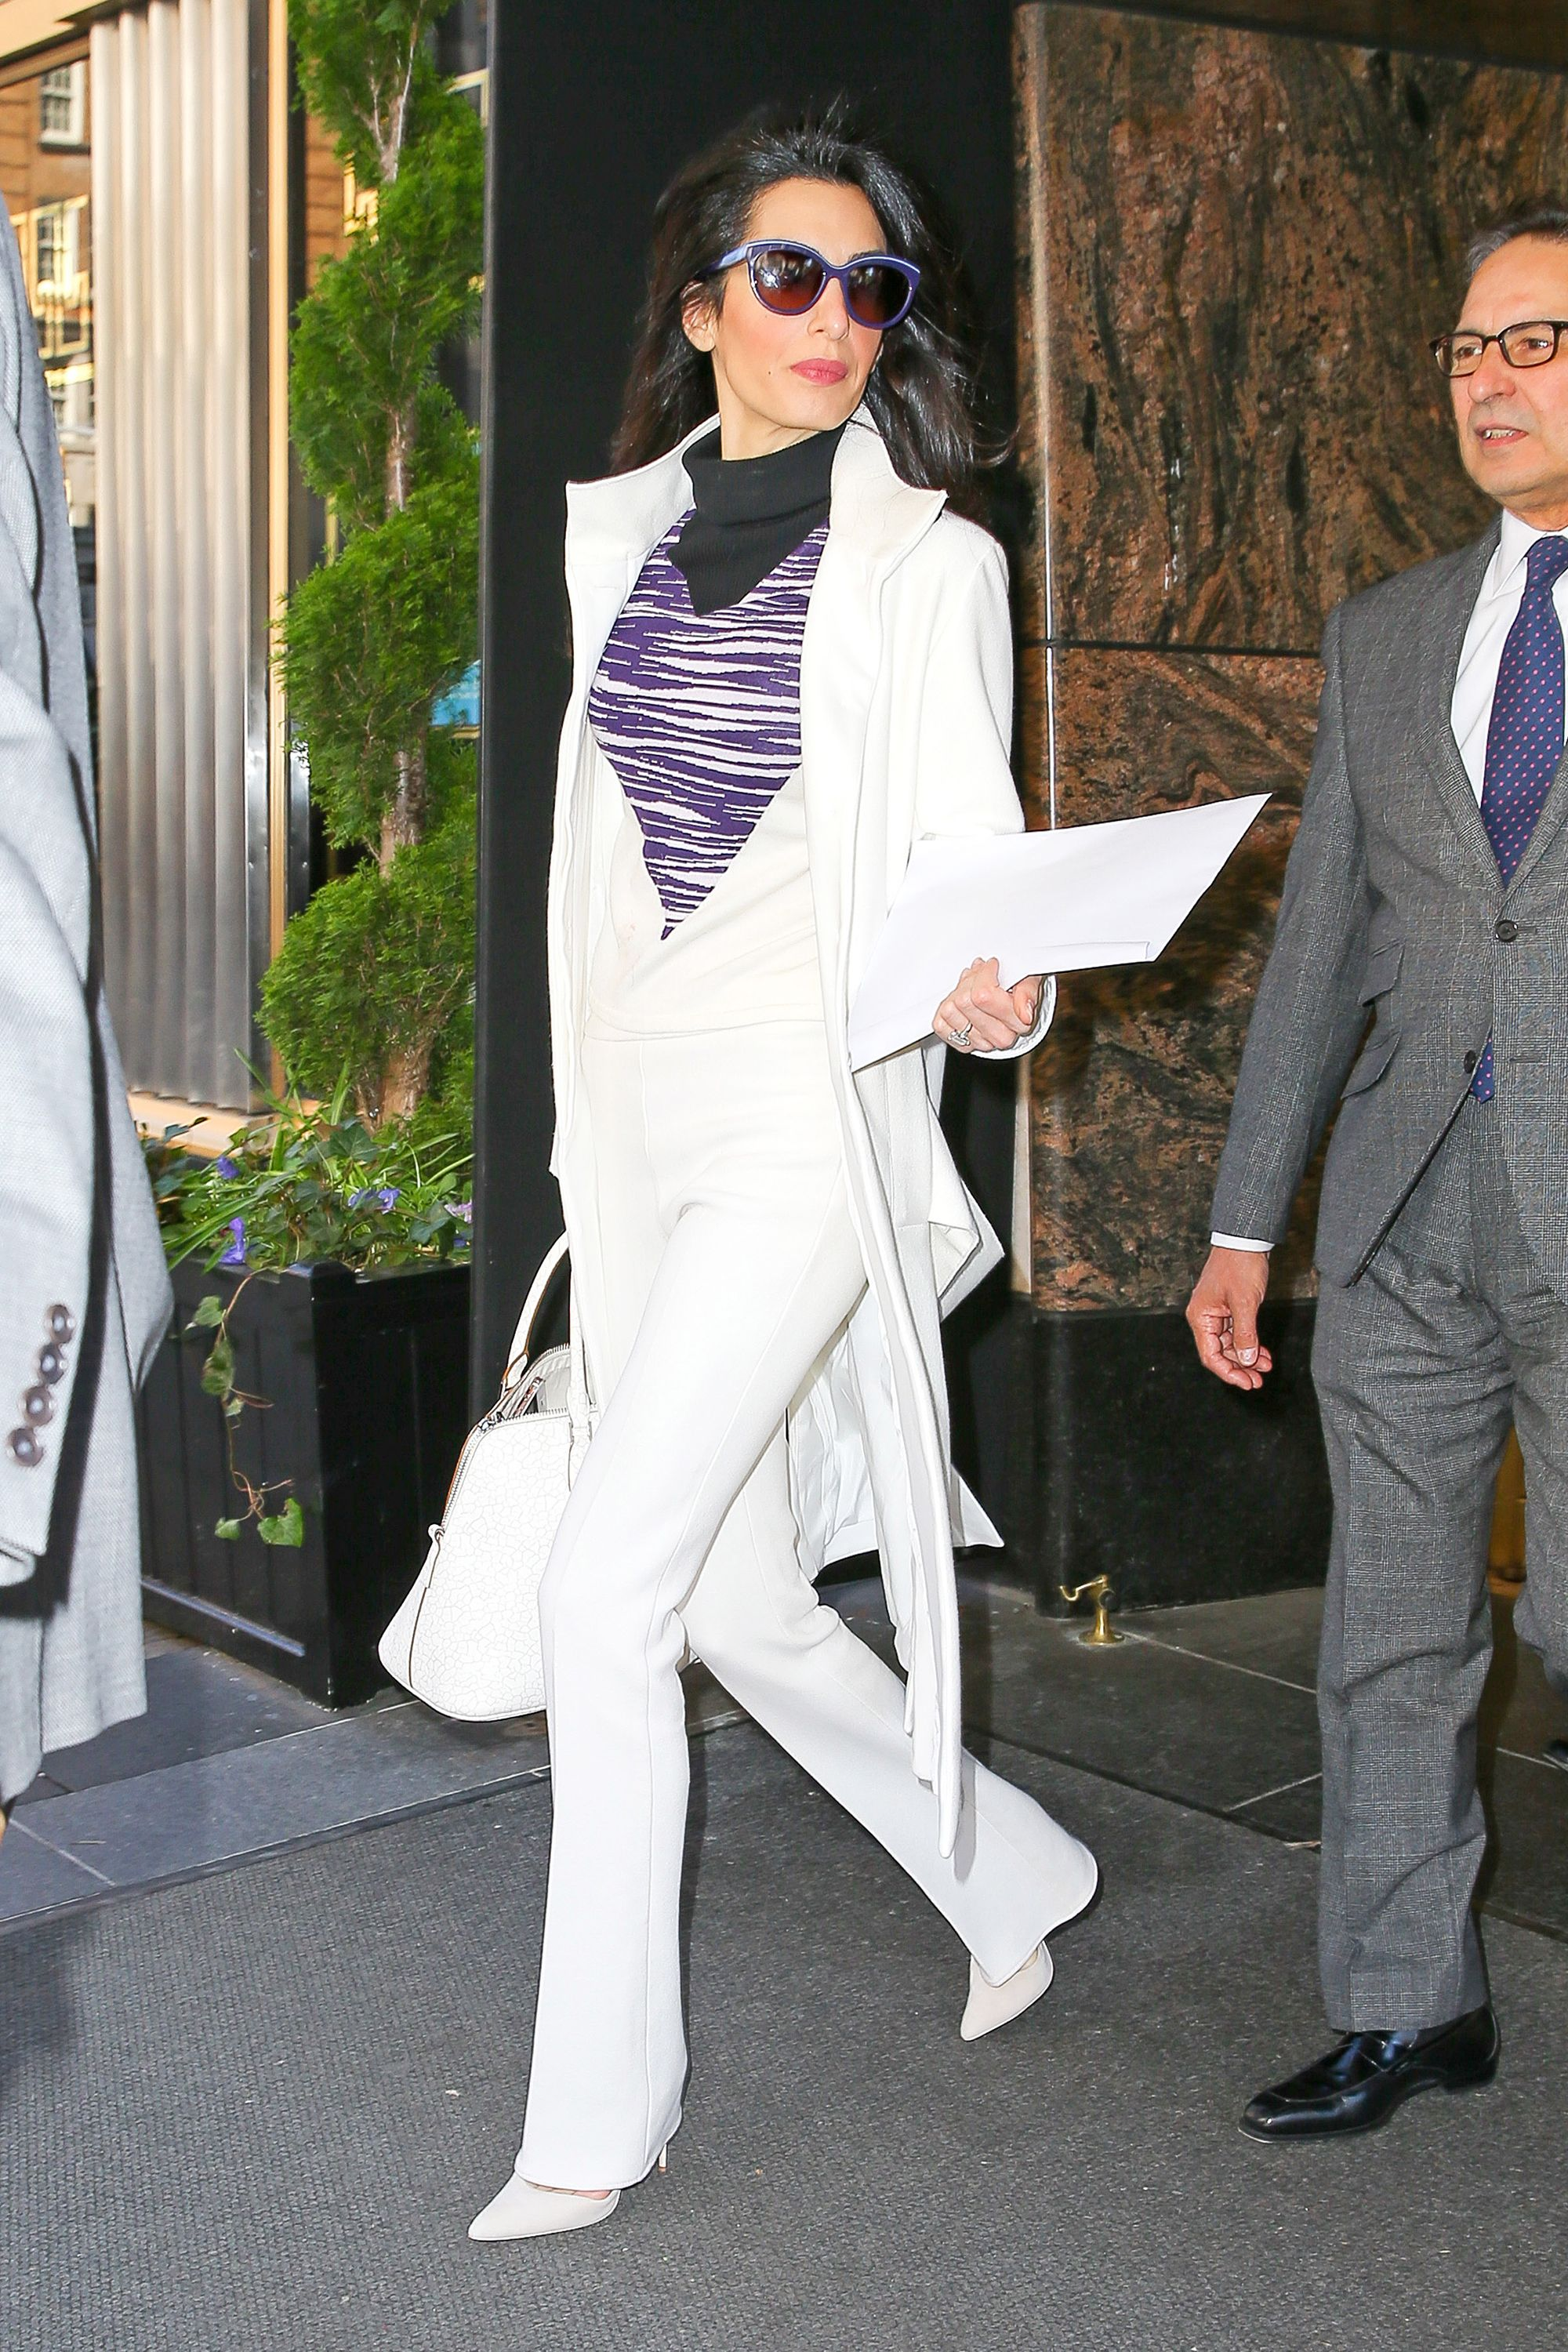 7 Impeccable Fashion Tips You Can Learn From Amal Clooney SELF 73